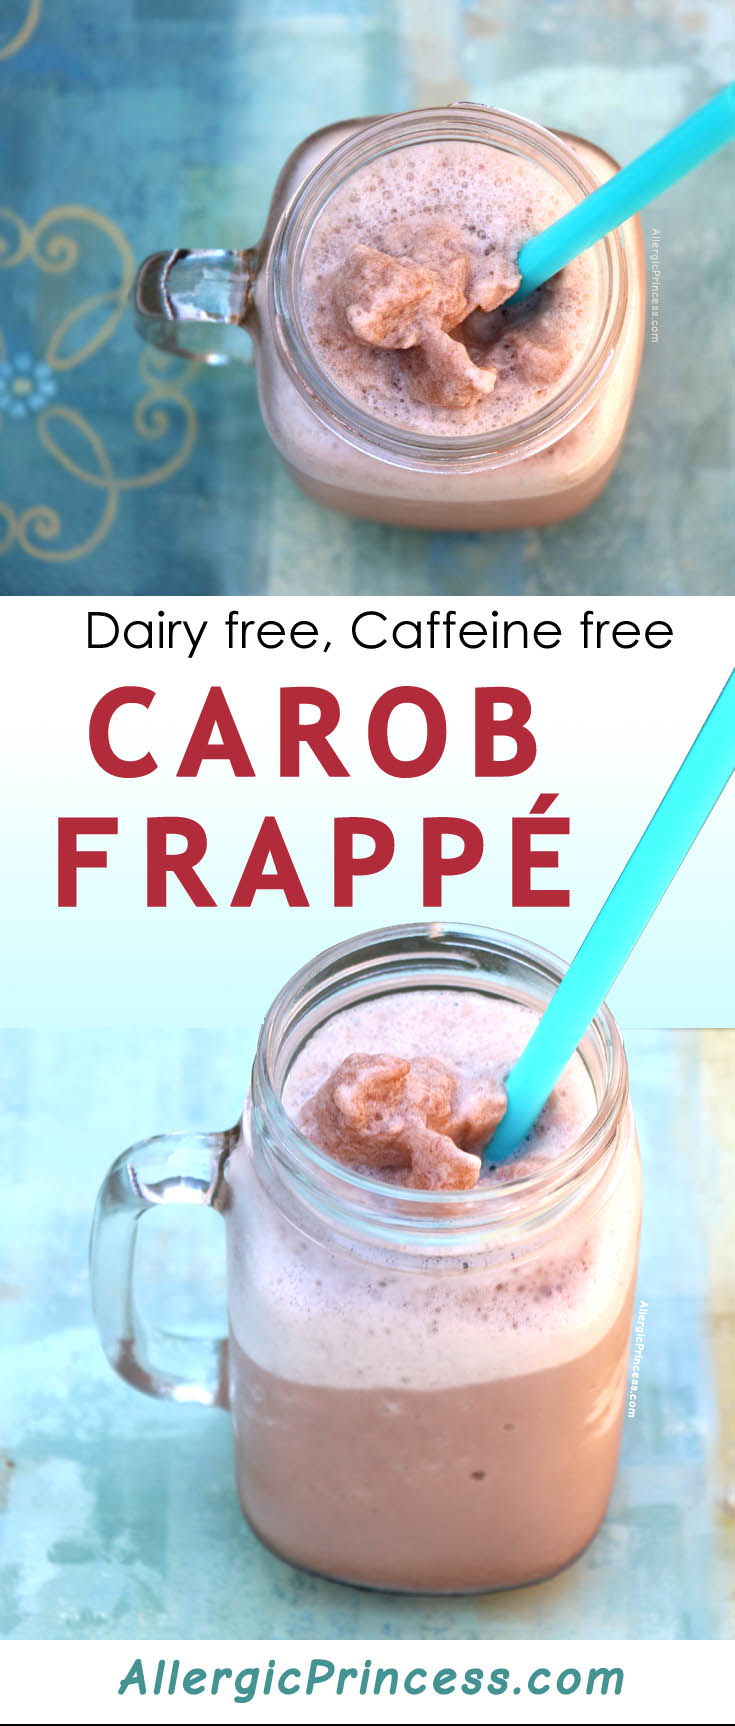 Carob Frappé is a delightfully refreshing drink that is a great caffeine free alternative to coffee frappé.